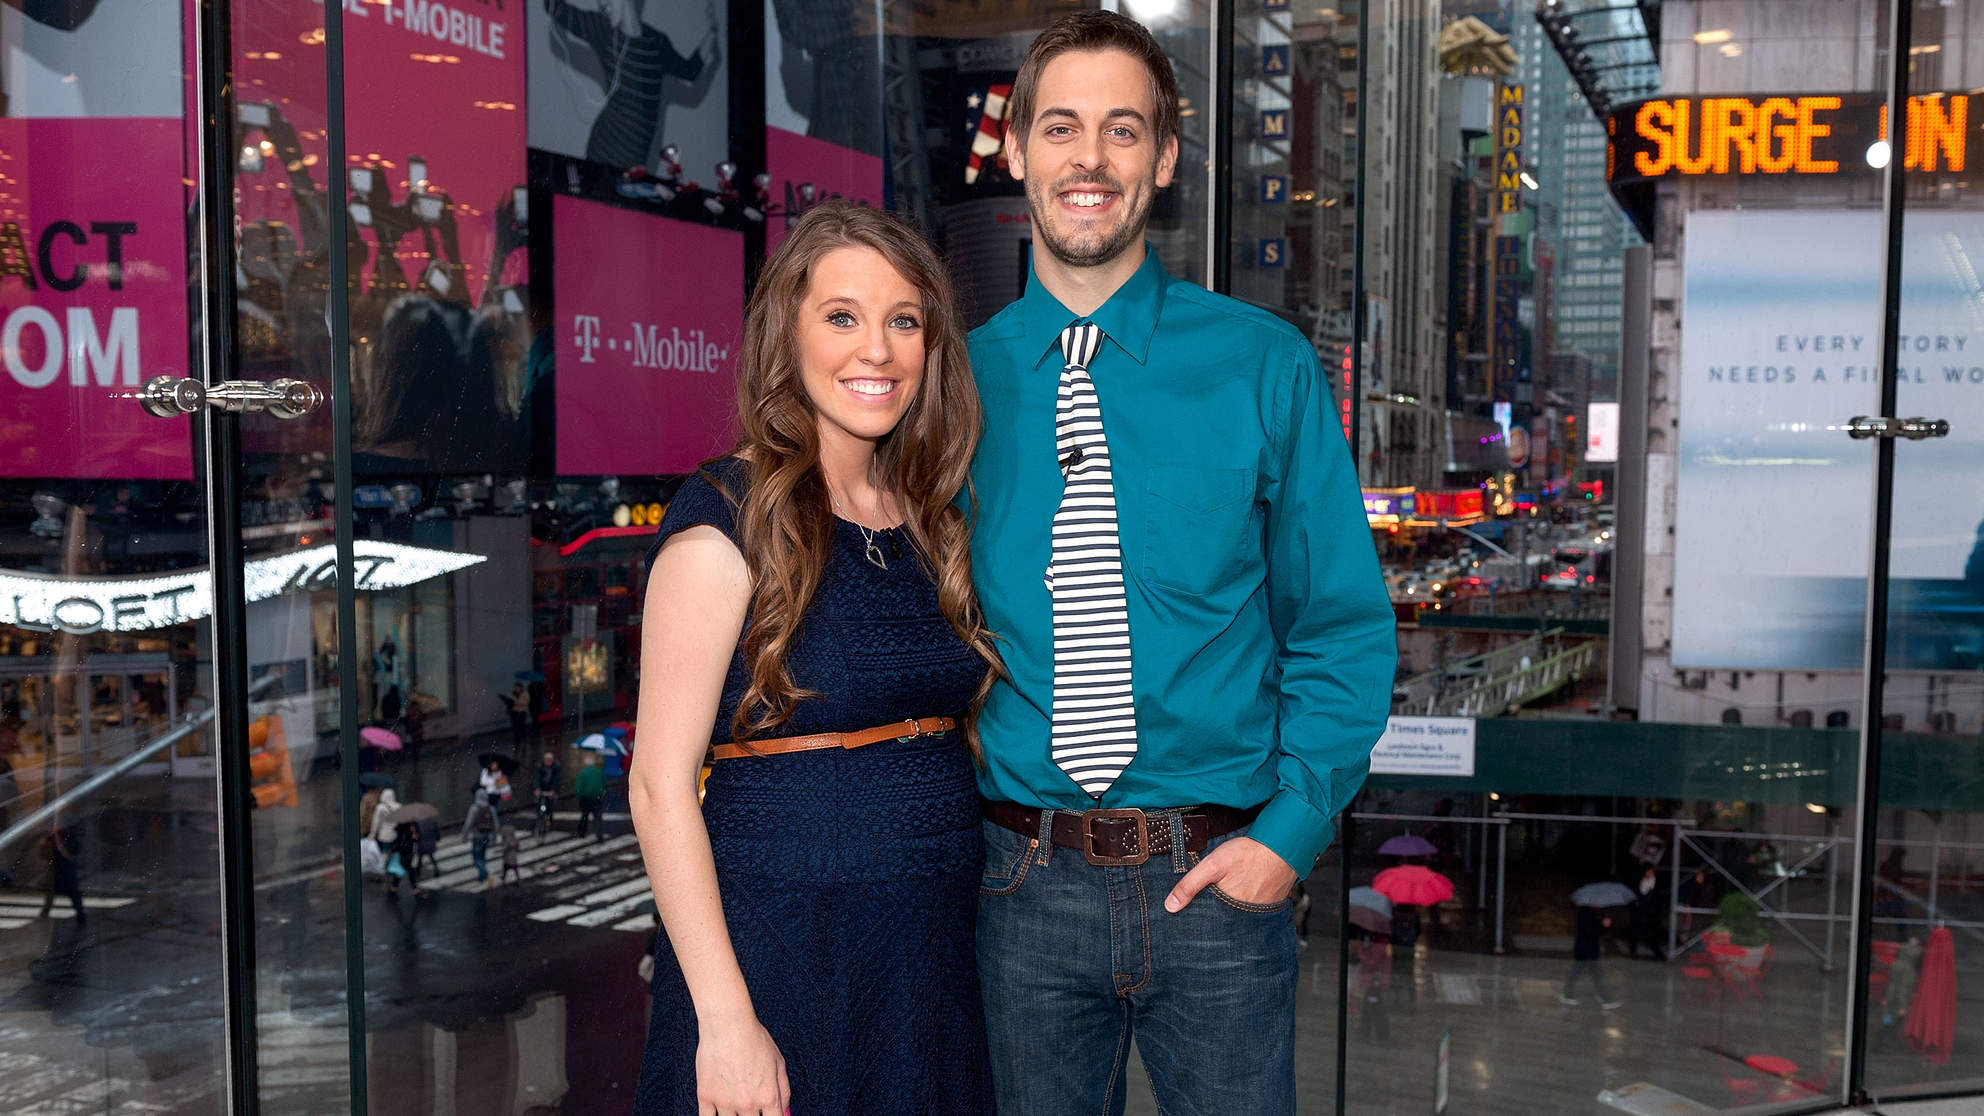 Jill Duggar Discusses Her Sex Life and Gives Bedroom Tips: '3-4 Times a Week Is a Good Start'